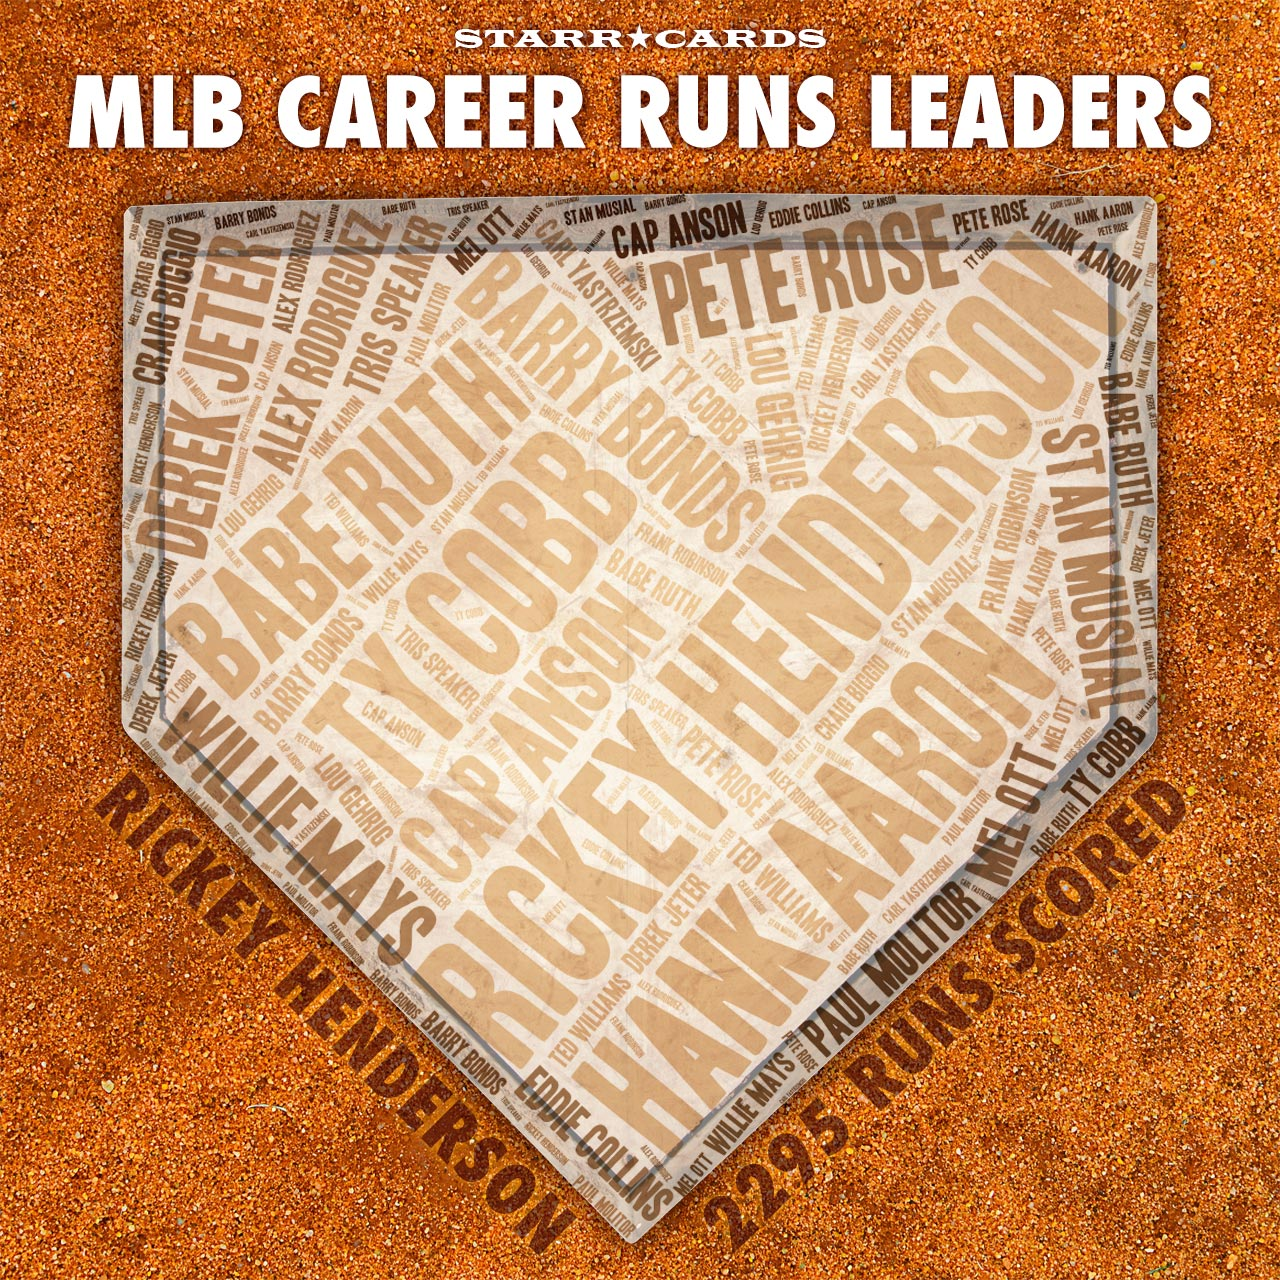 Starr Cards Infographic: MLB Career Runs Scored Leaders